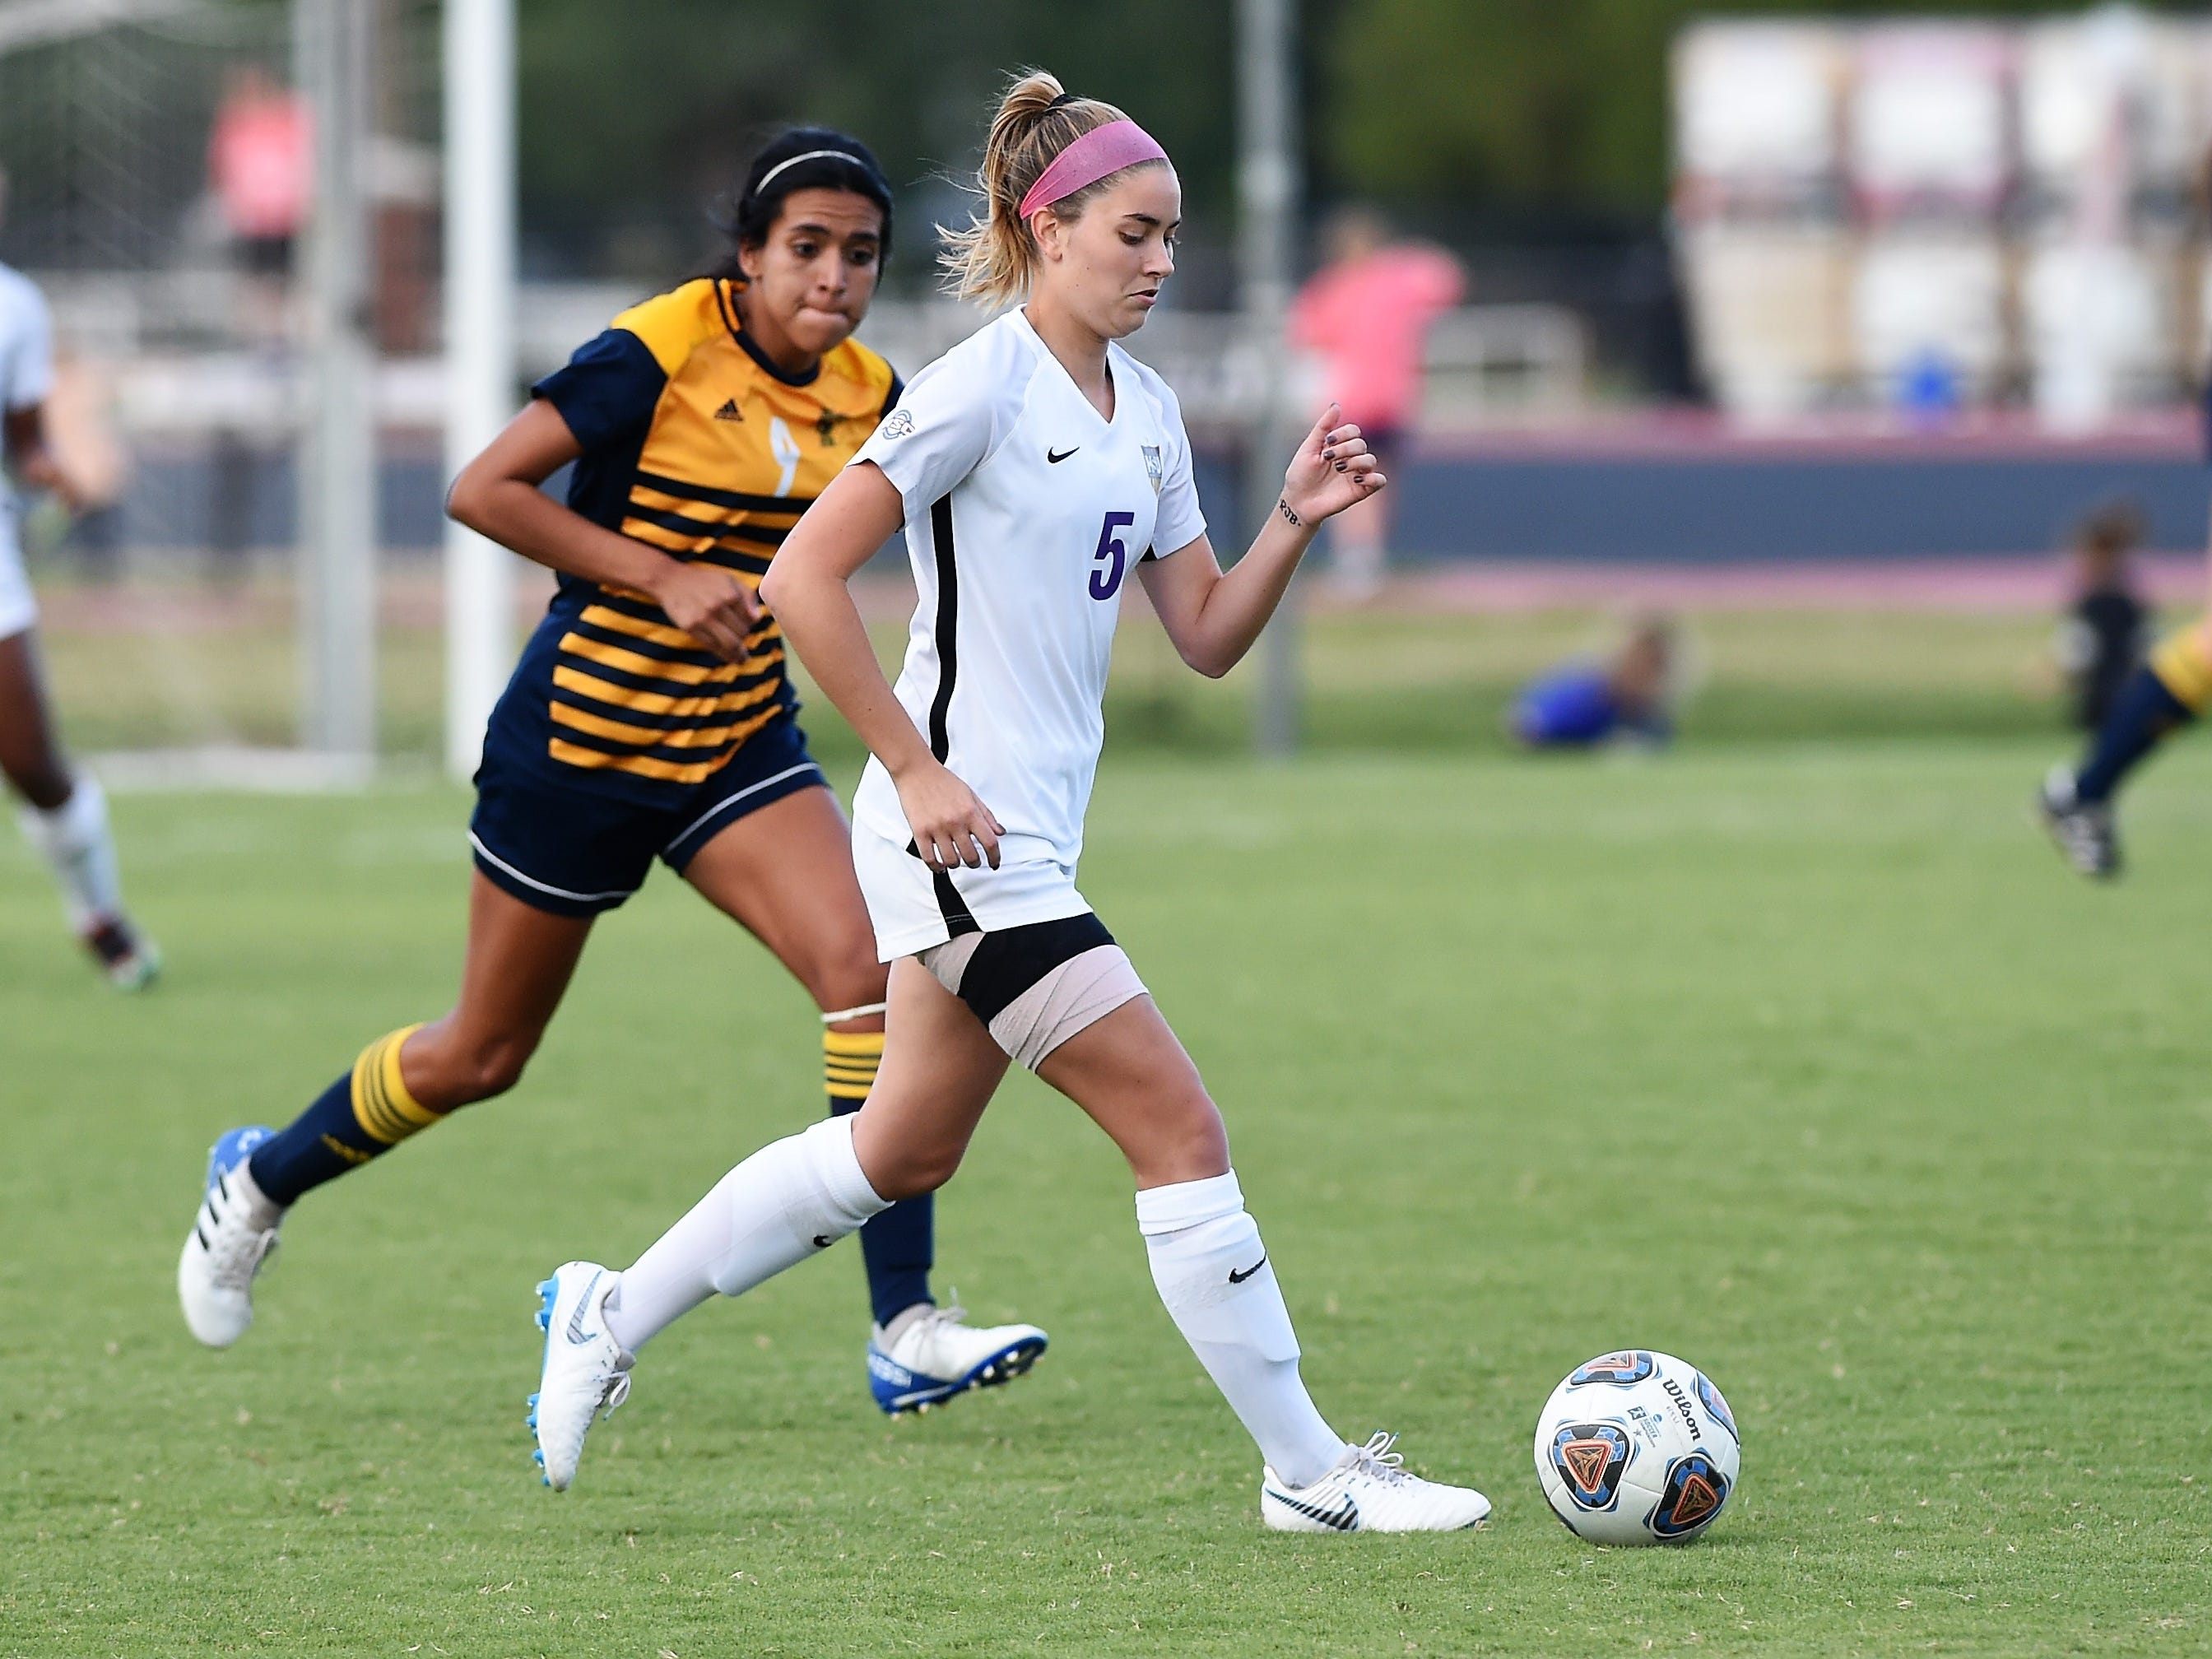 Hardin-Simmons midfielder Evan Pipkin (5) controls the ball against Howard Payne at the HSU Soccer Complex on Thursday, Oct. 11, 2018. The Cowgirls won 4-1.